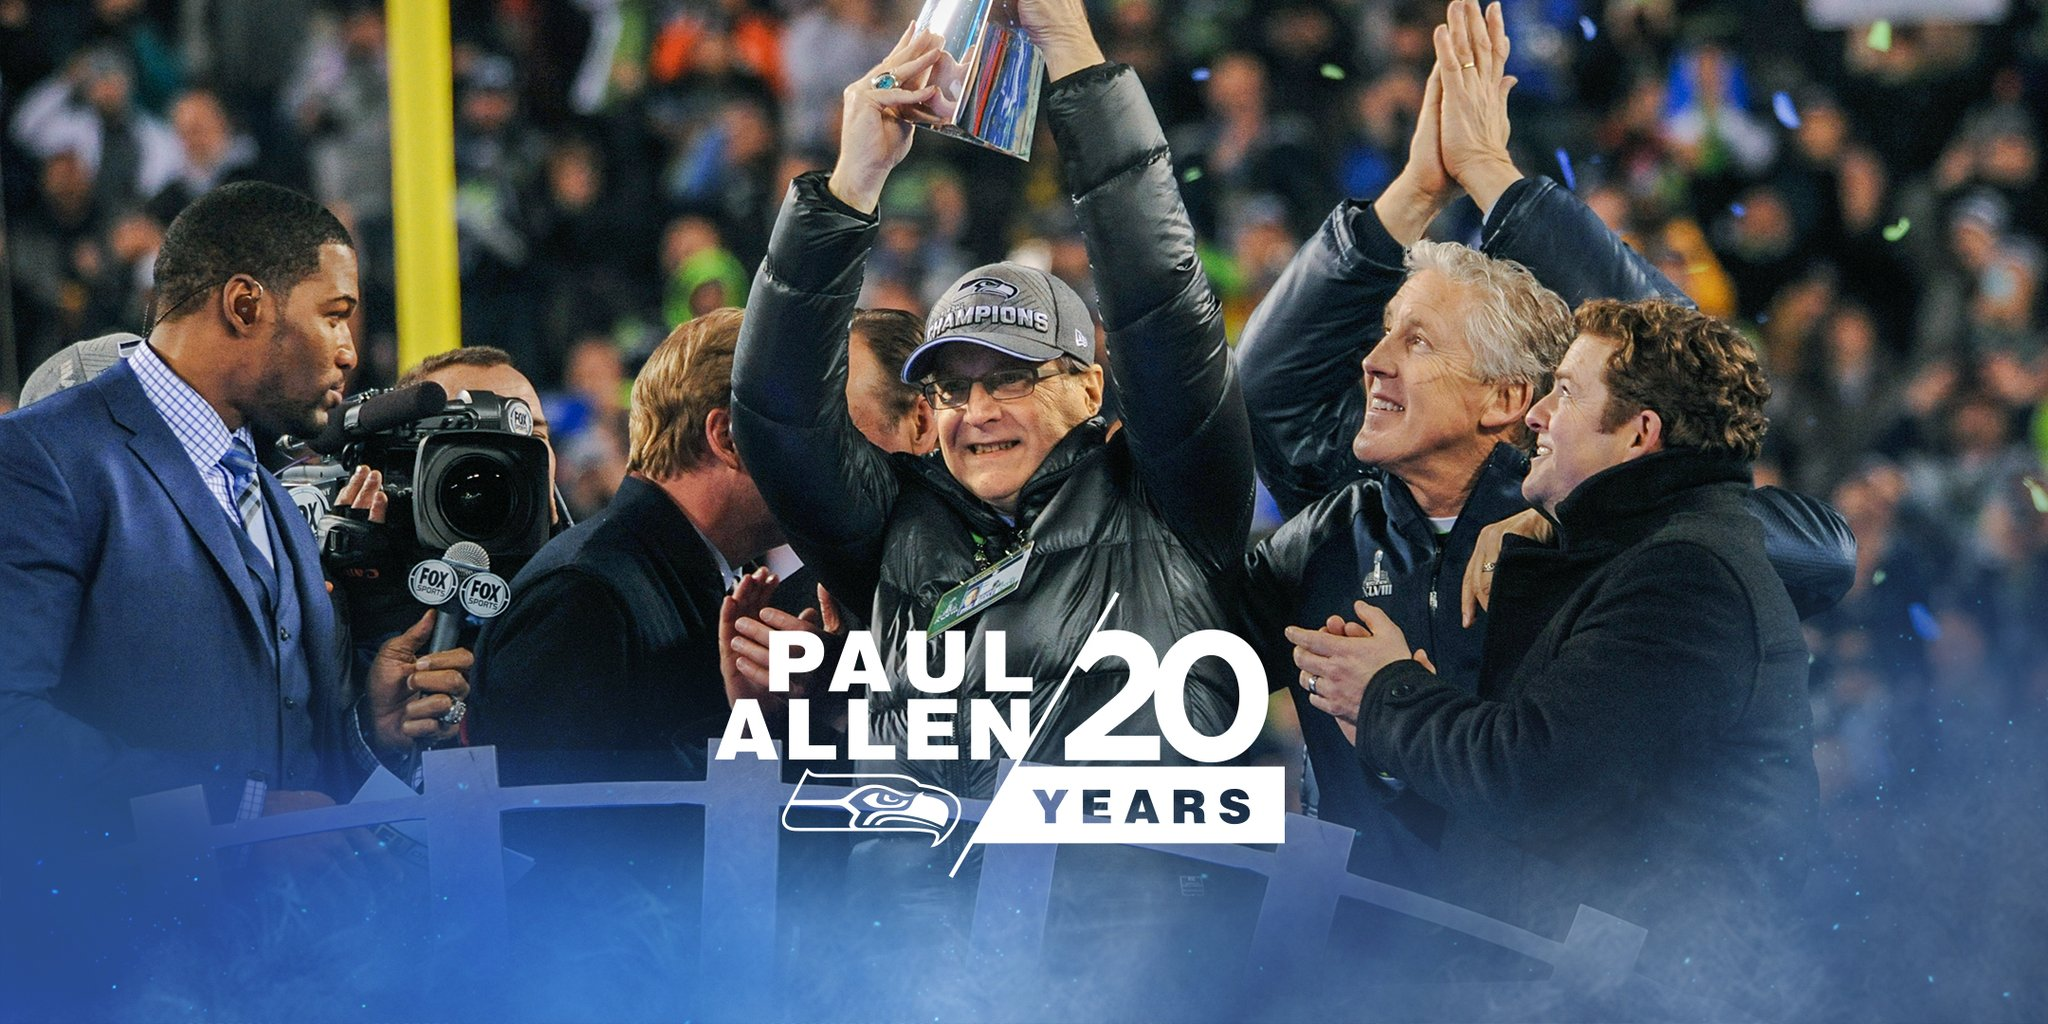 #ThanksPaul for everything you've done for Seattle, and the world. https://t.co/howWIvSYHM